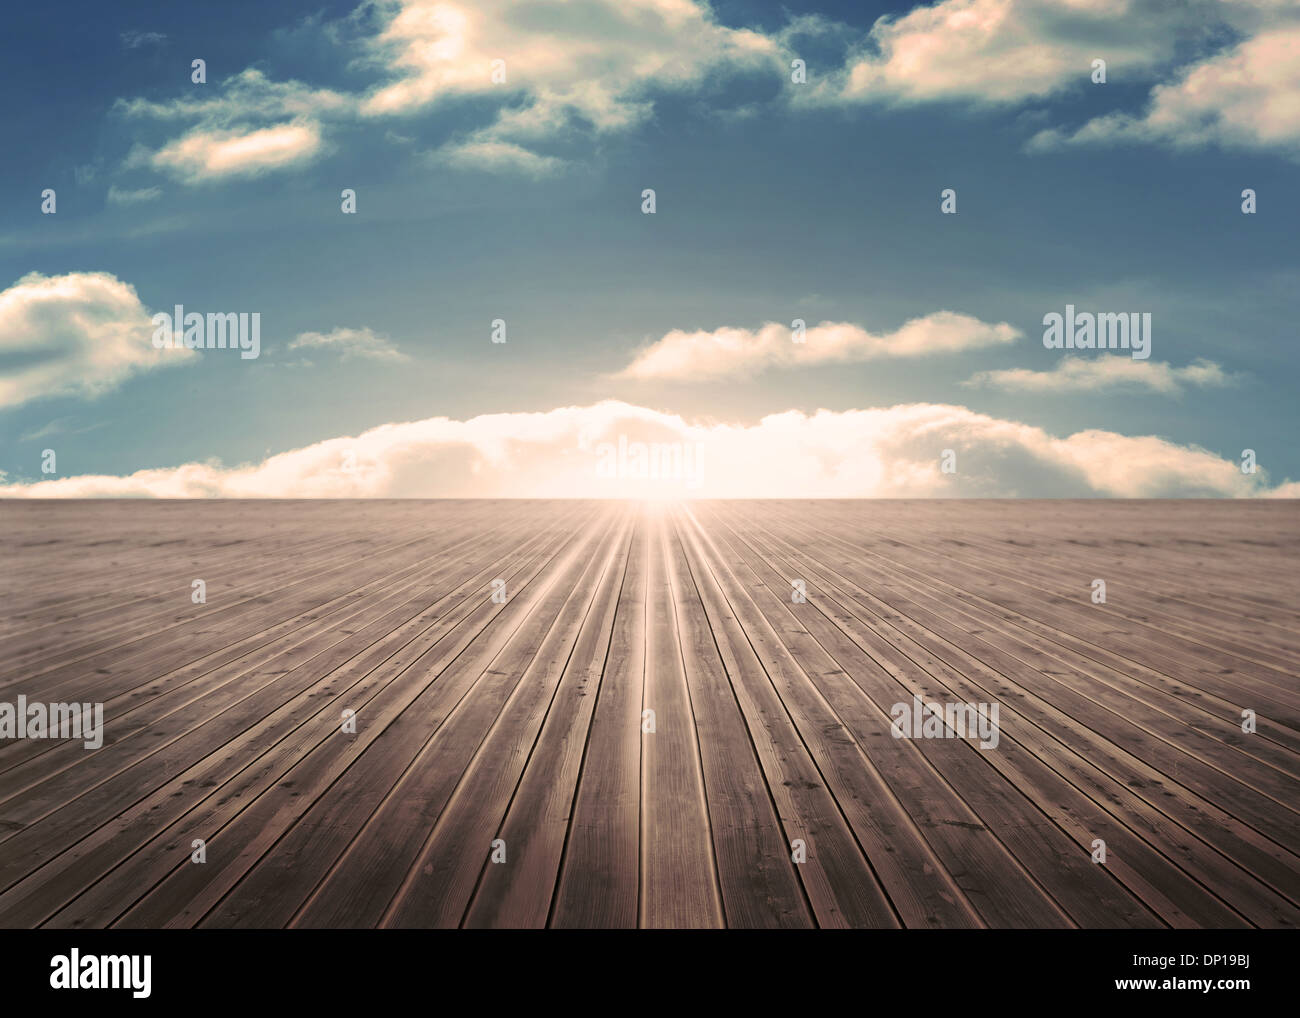 Wooden planks leading to blue sky - Stock Image